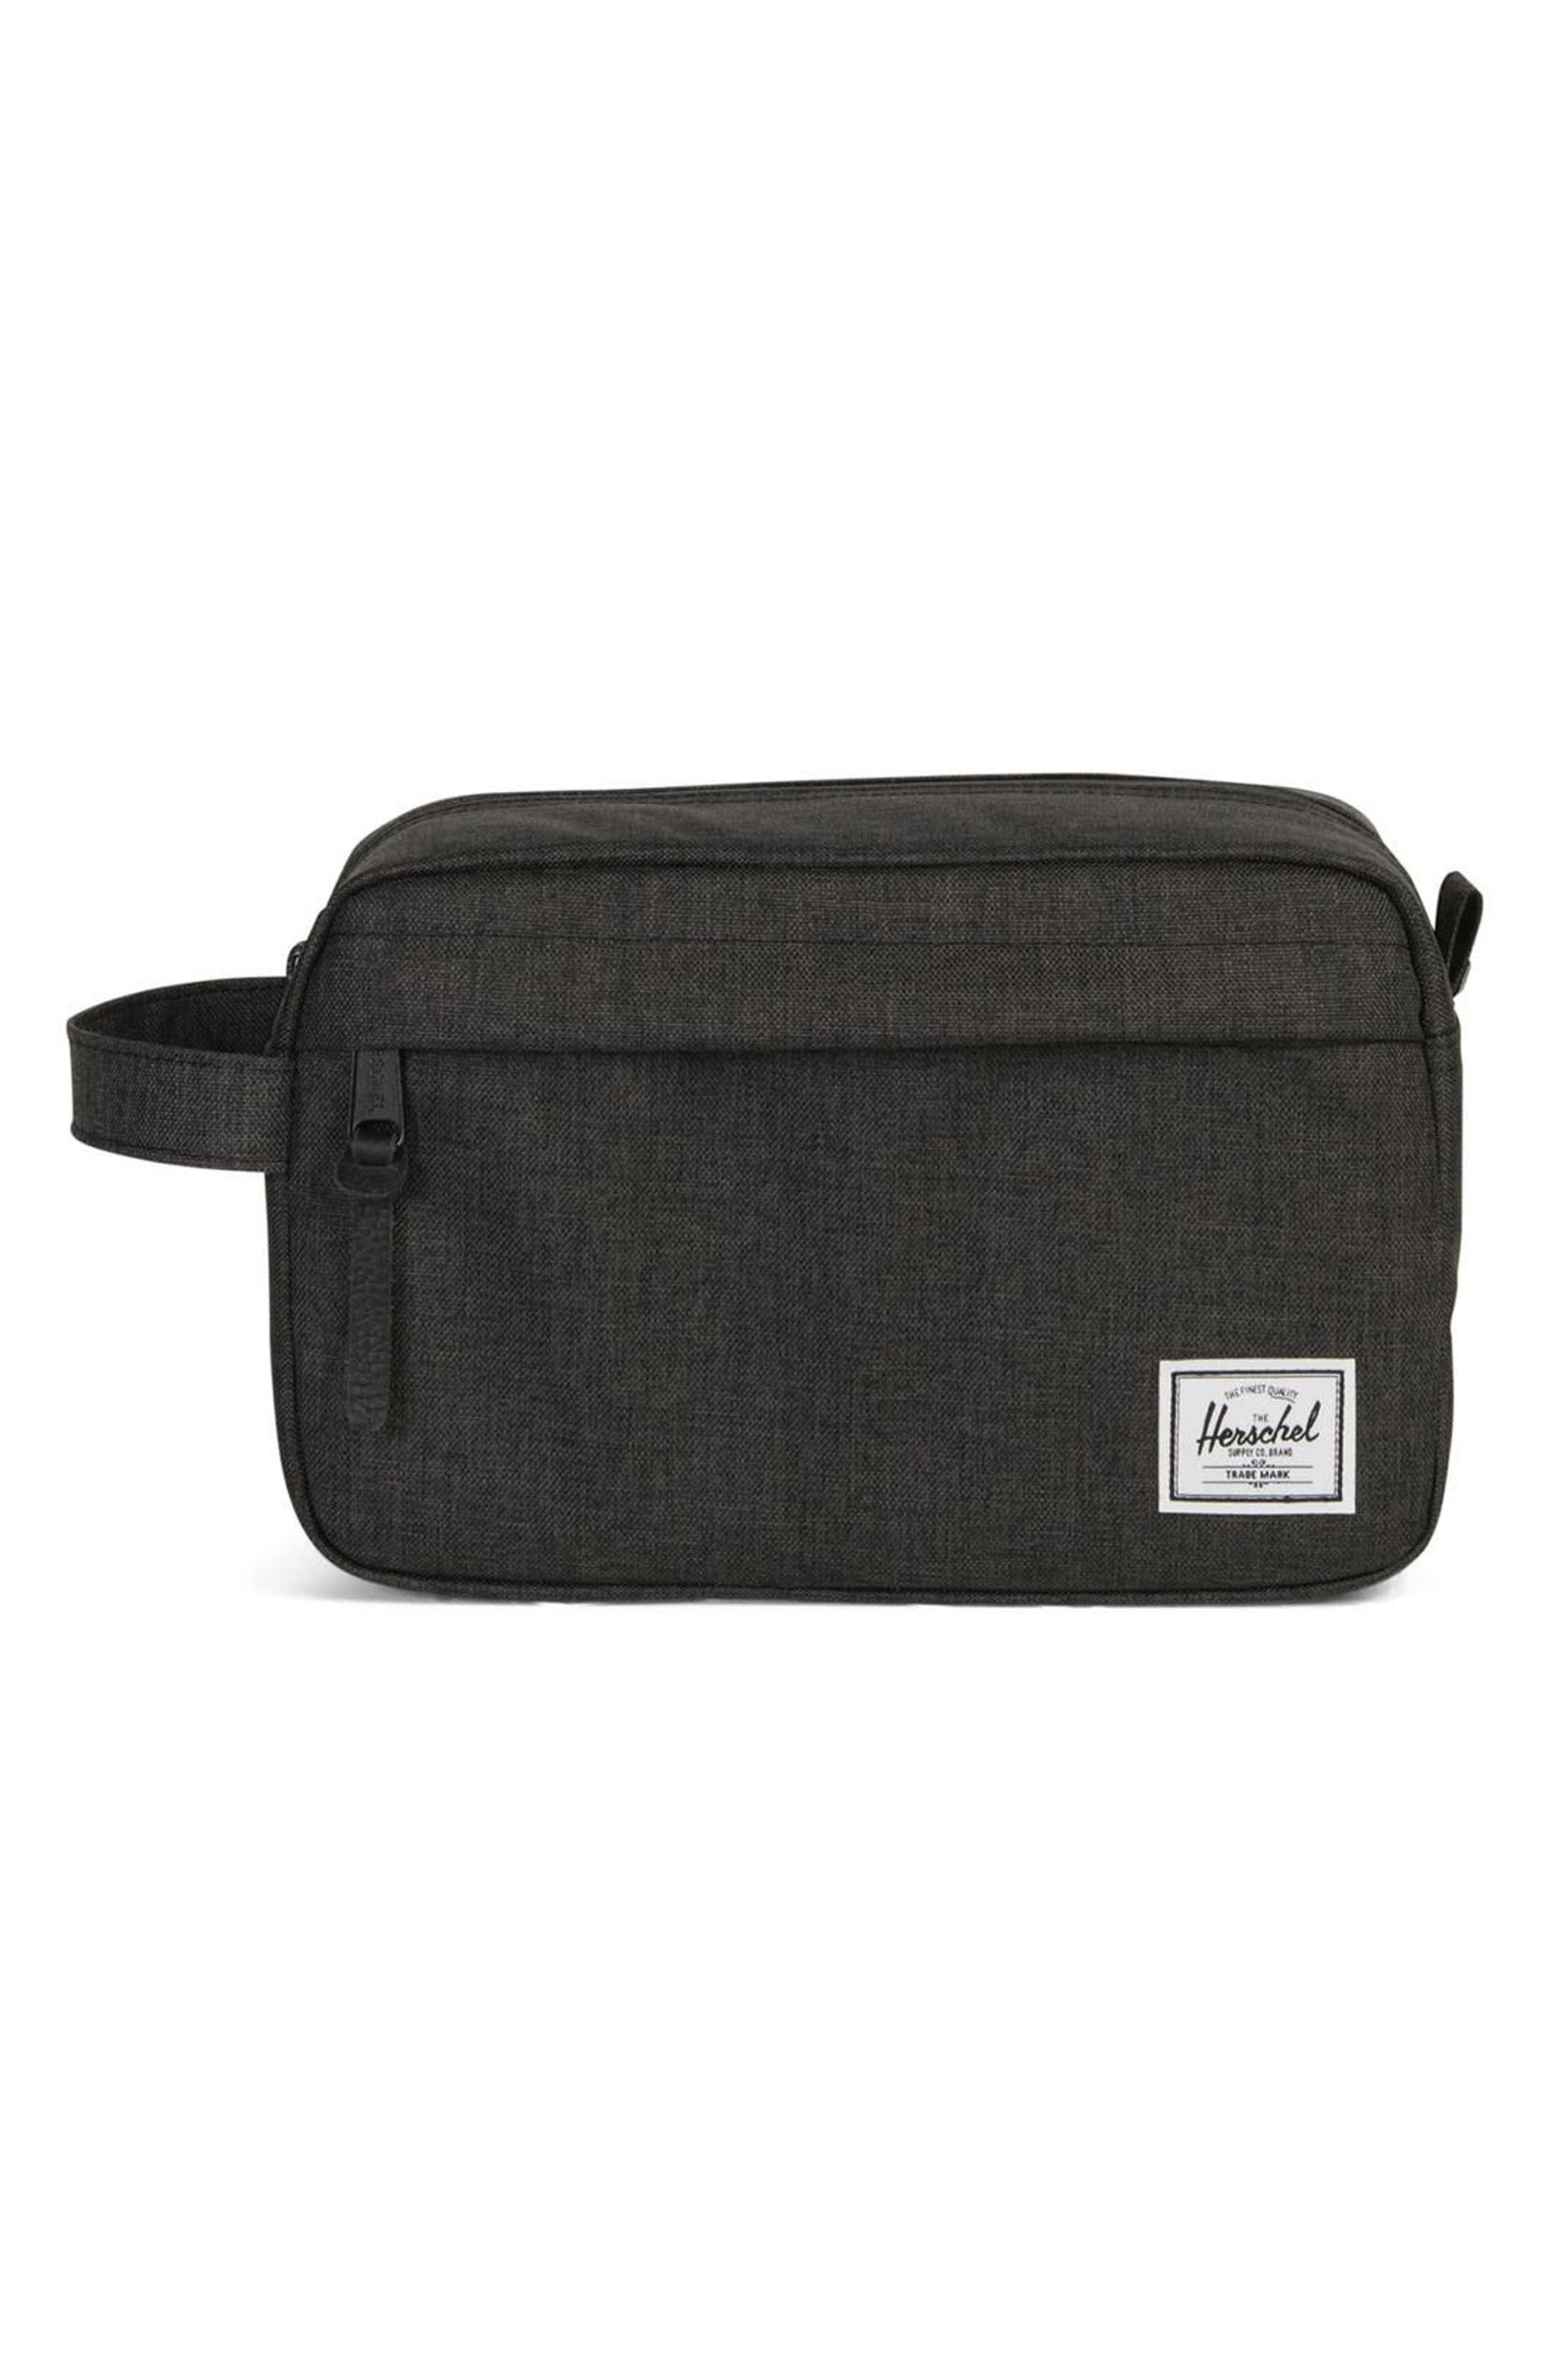 934fc525ab25 Herschel Supply Co. Chapter Travel Kit